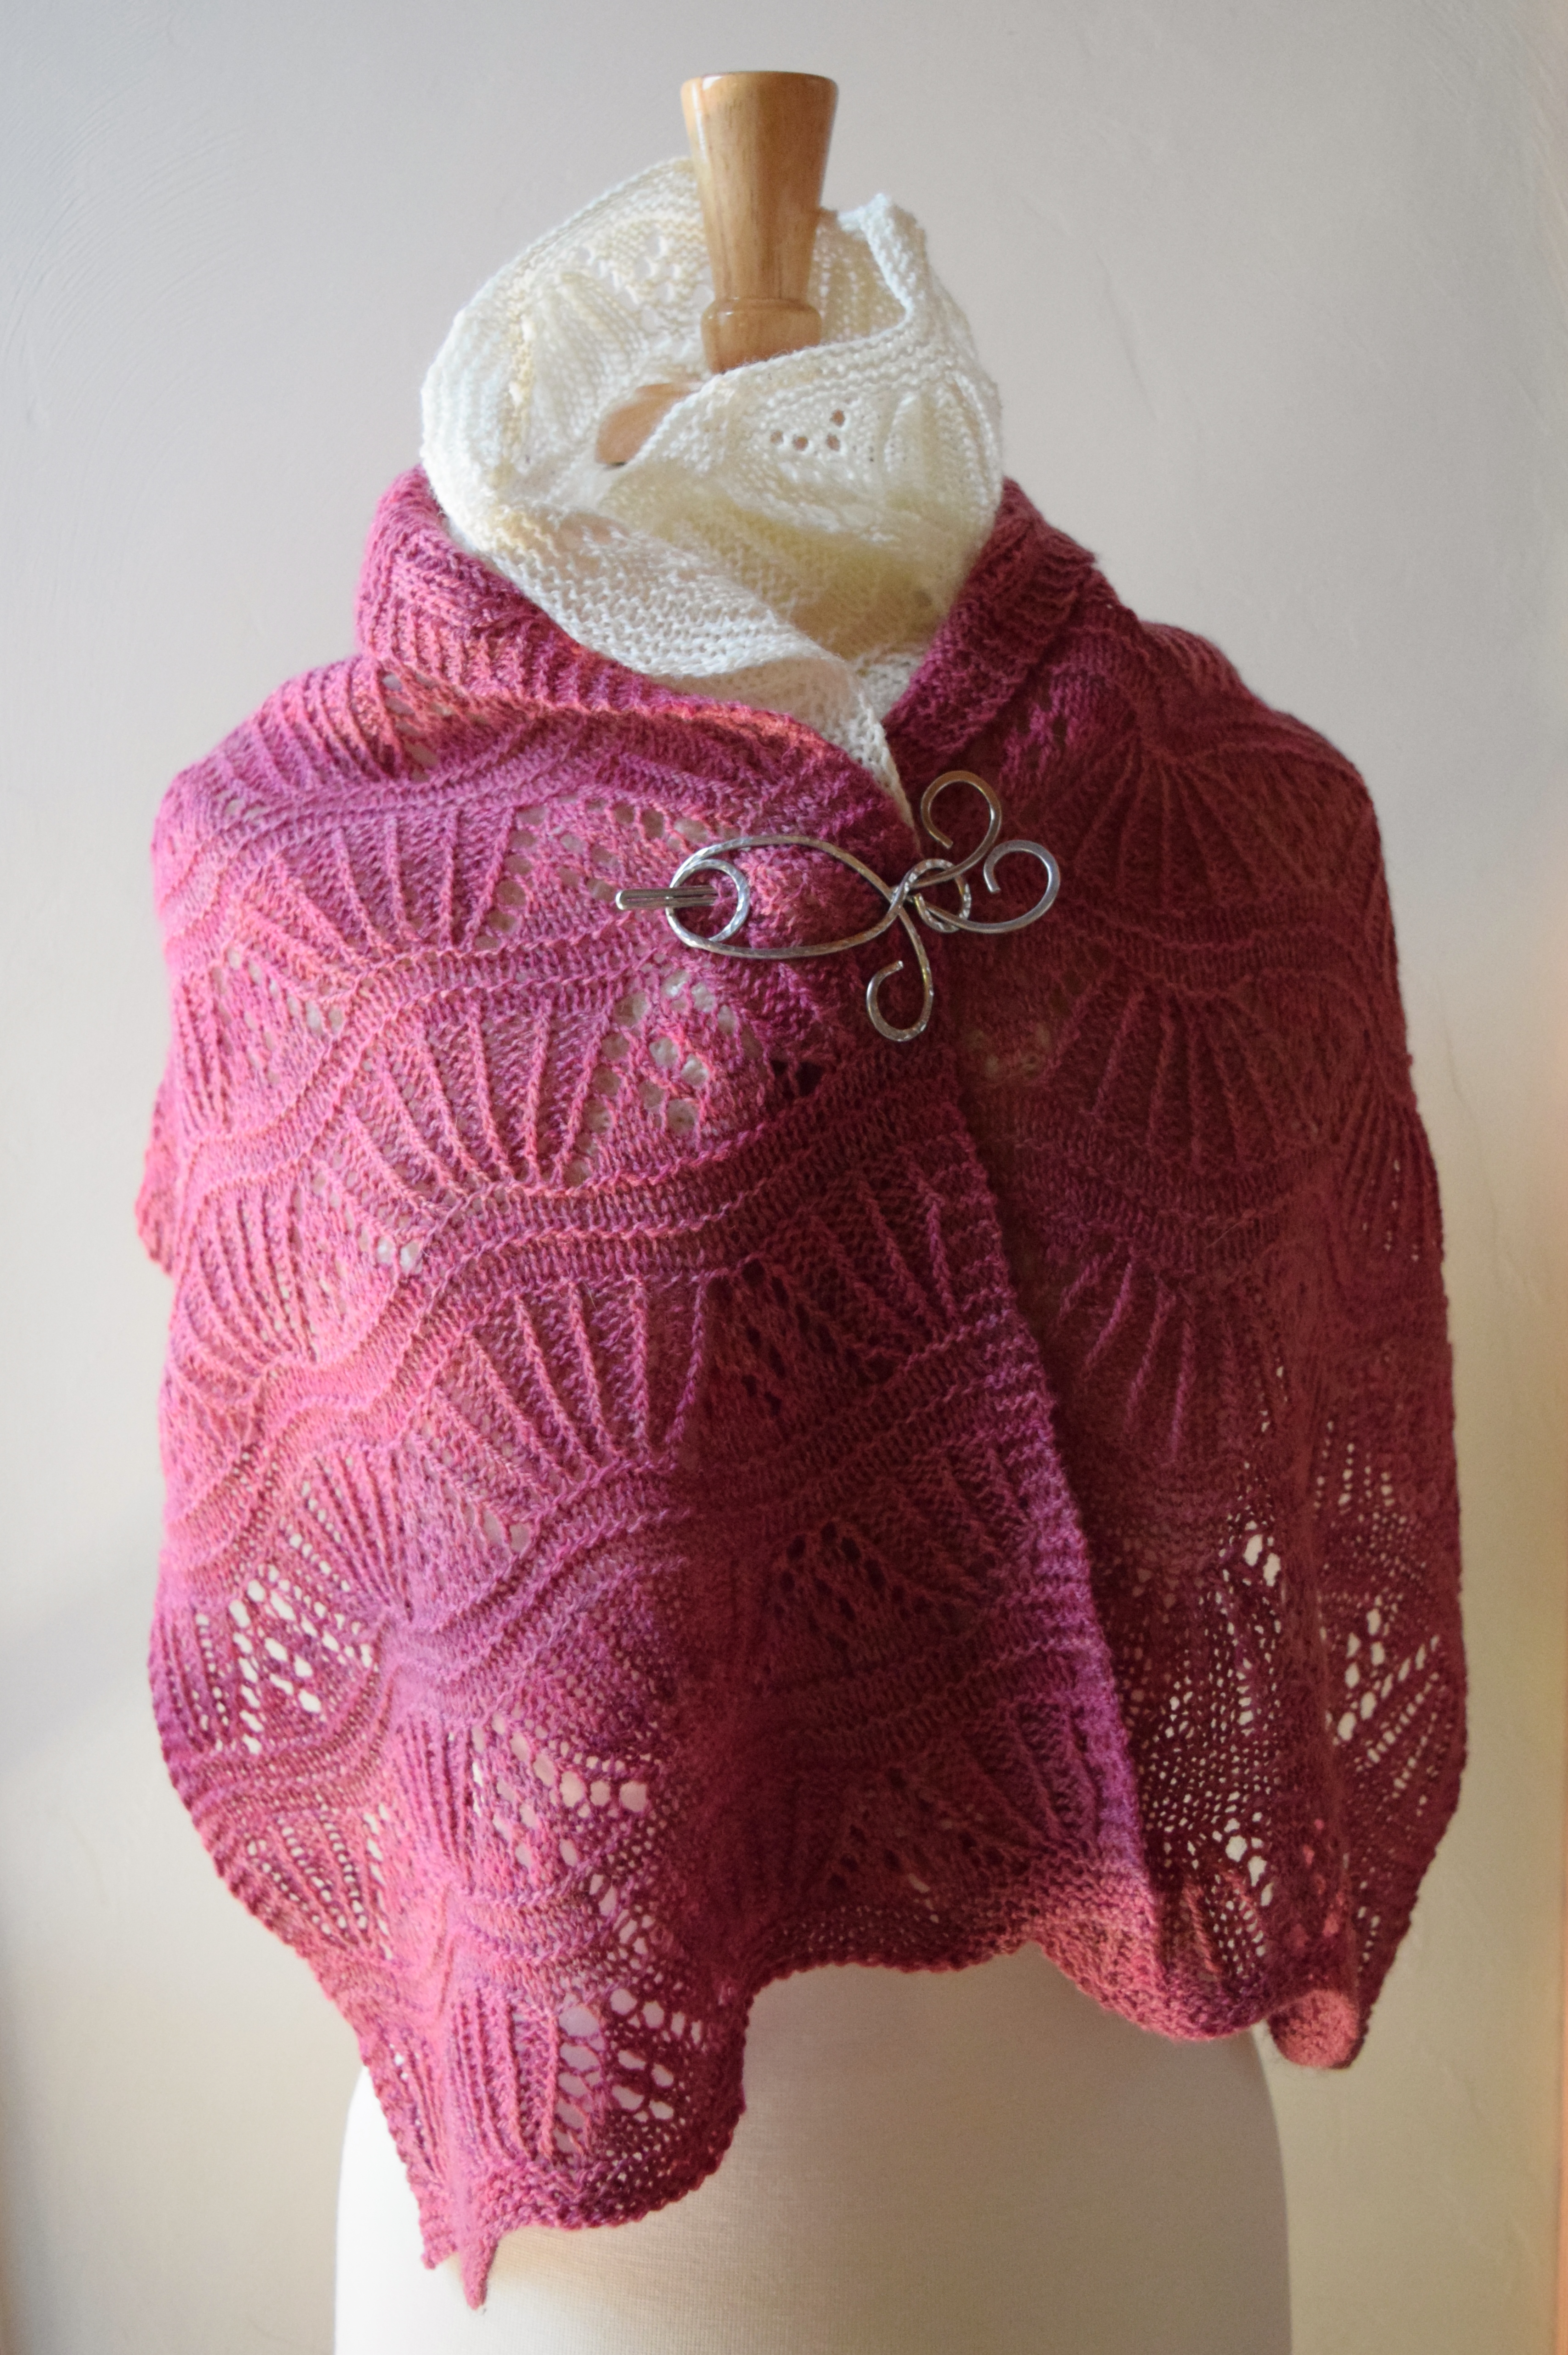 jenjoycedesign© small stole & cowl together